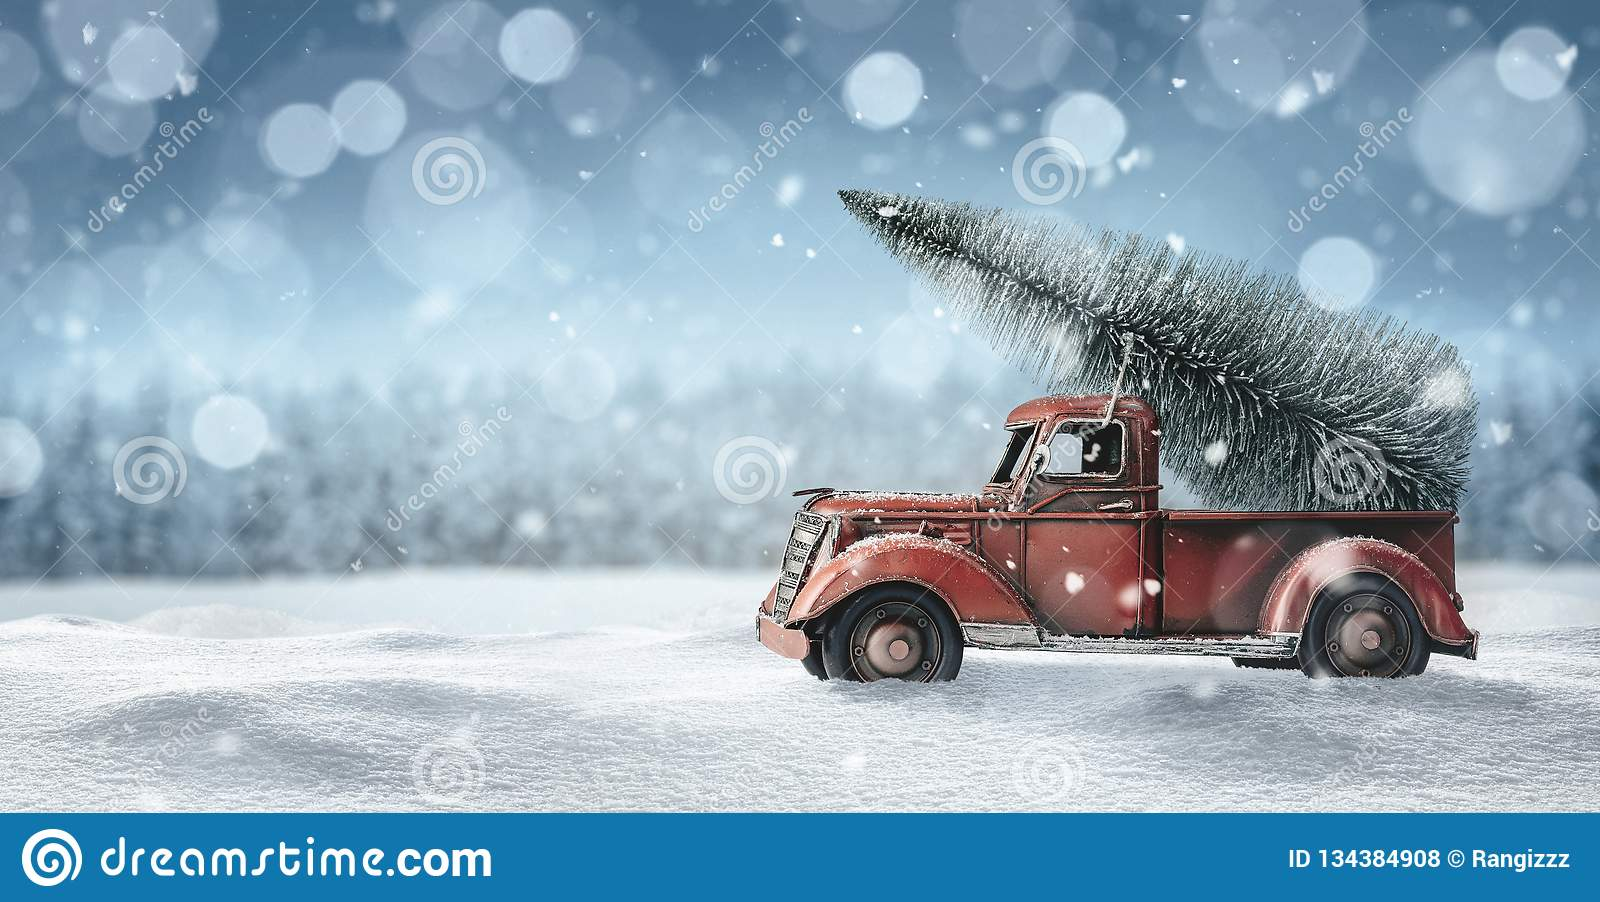 Old Red Truck With Christmas Tree In Back.Old Red Truck With Christmas Tree Stock Photo Image Of